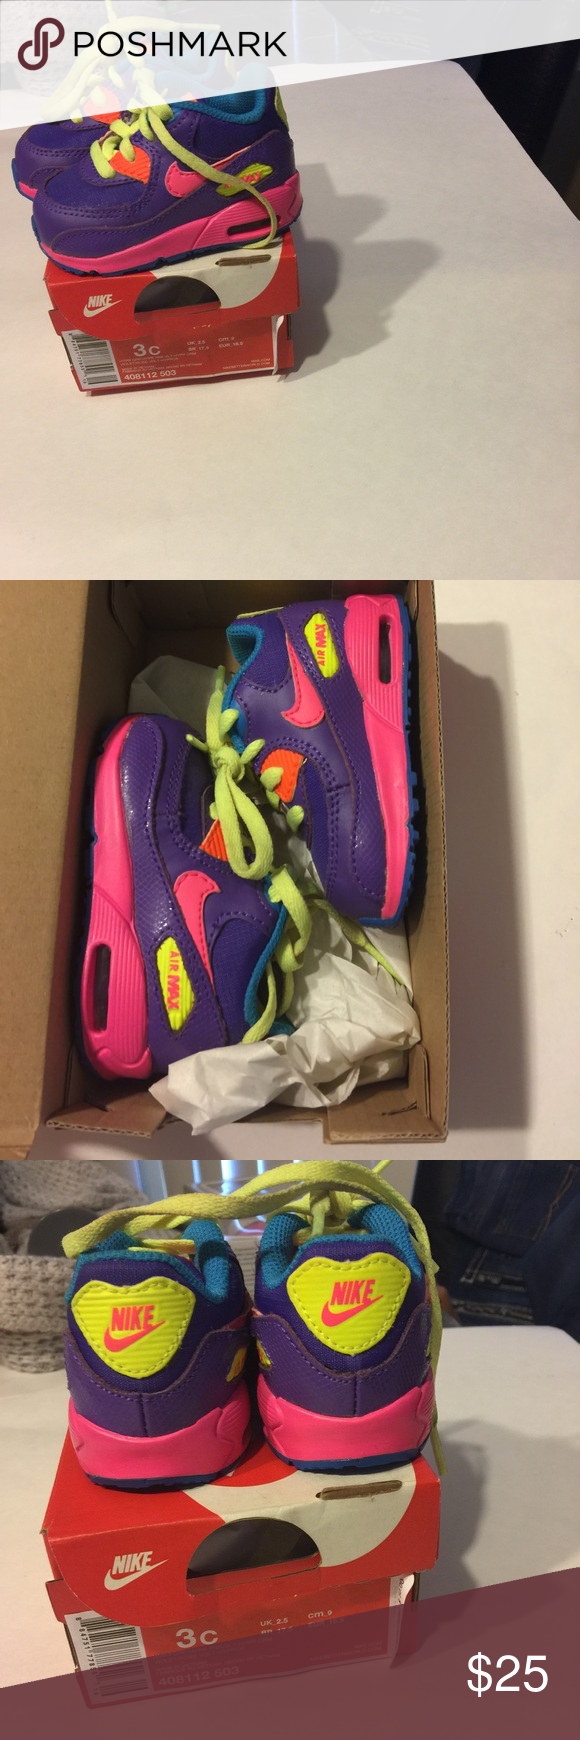 153cd4951a Infants Nike Air Max Size 3 Gently used baby Air Max....well kept and a very  versatile shoe....goes great with so many different outfits.